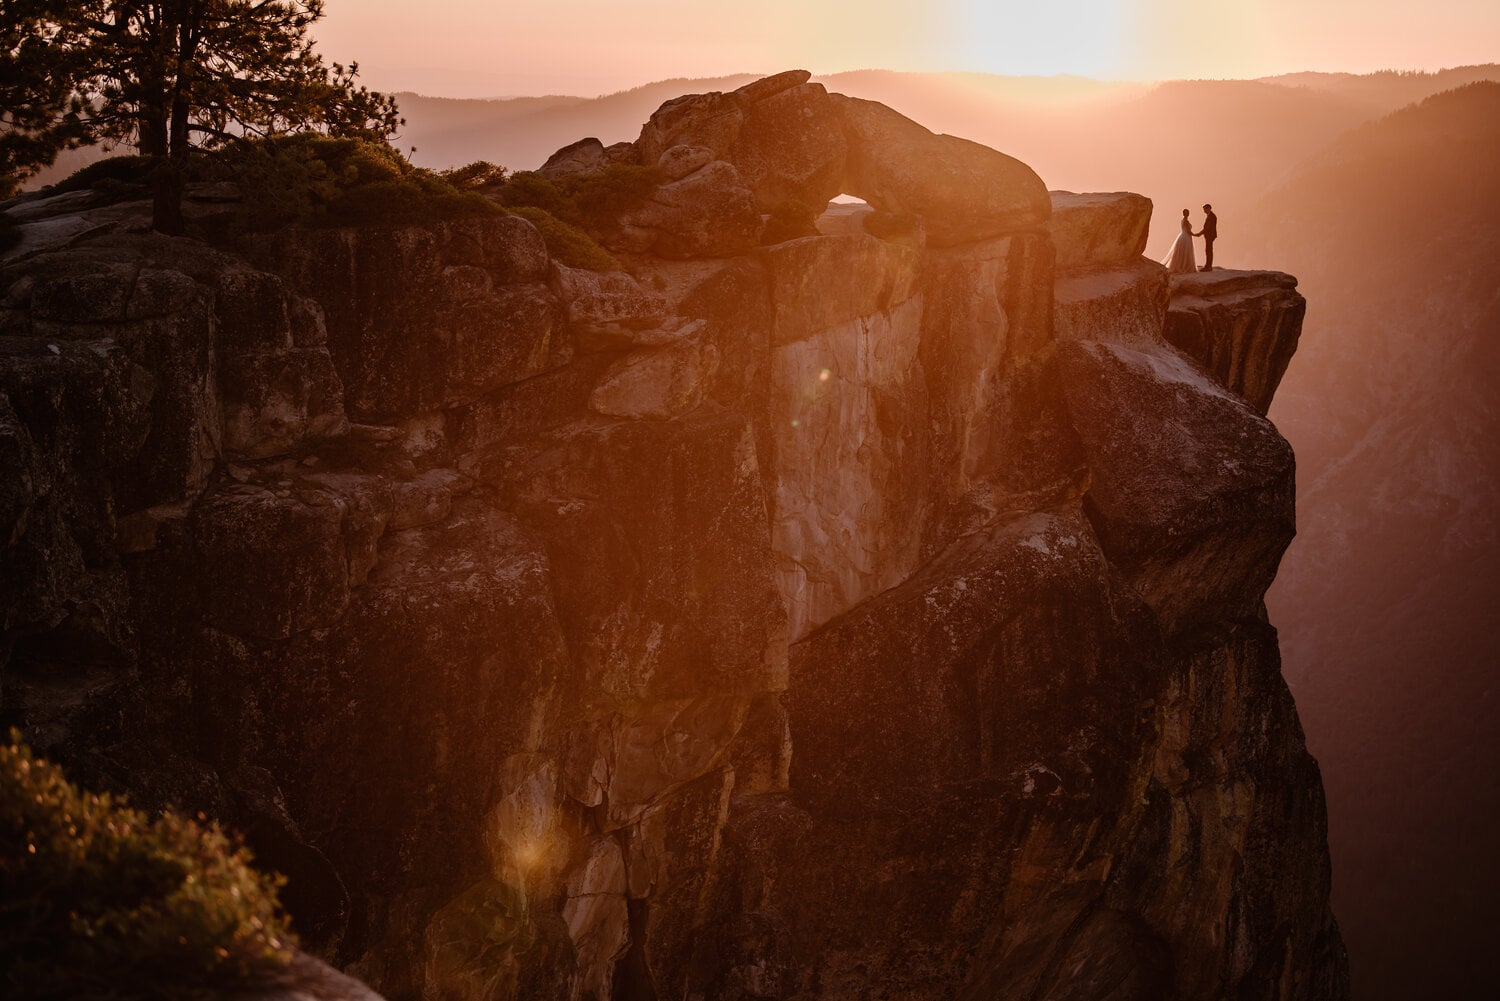 Bride and groom holds hands at sunset at Yosemite National Park.